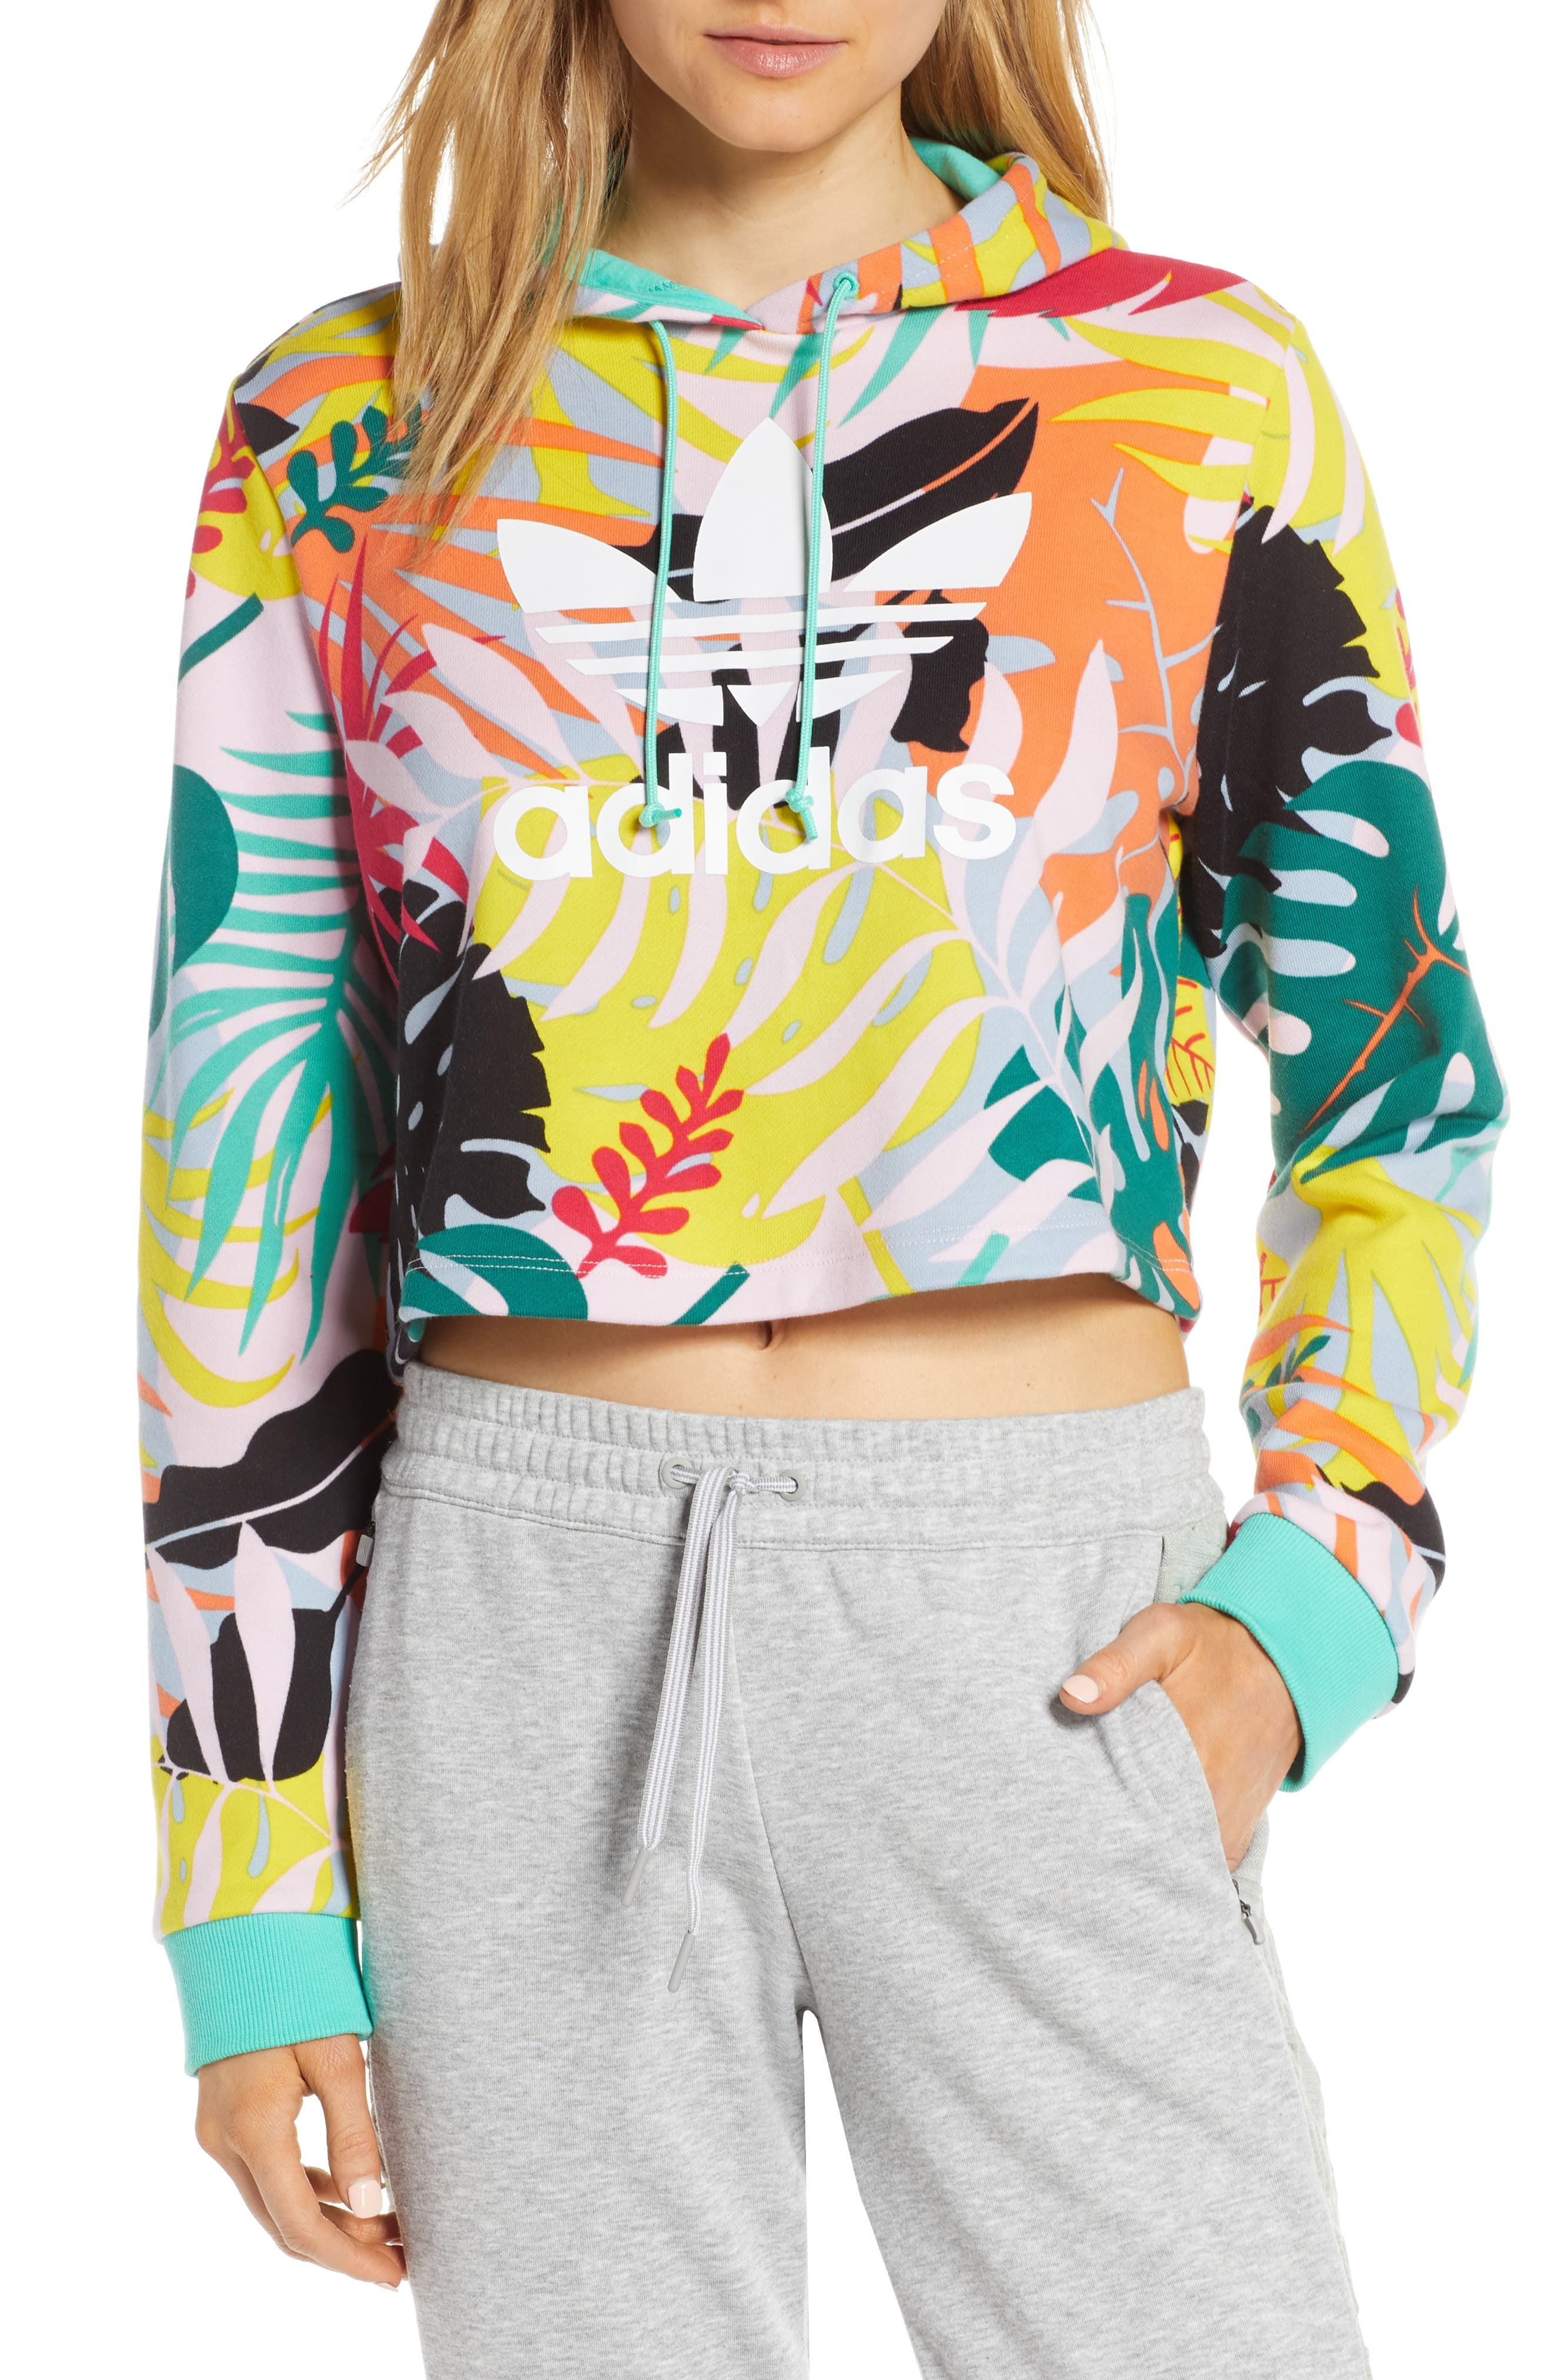 tropicalage In T Originals shirt Adidas Cropped